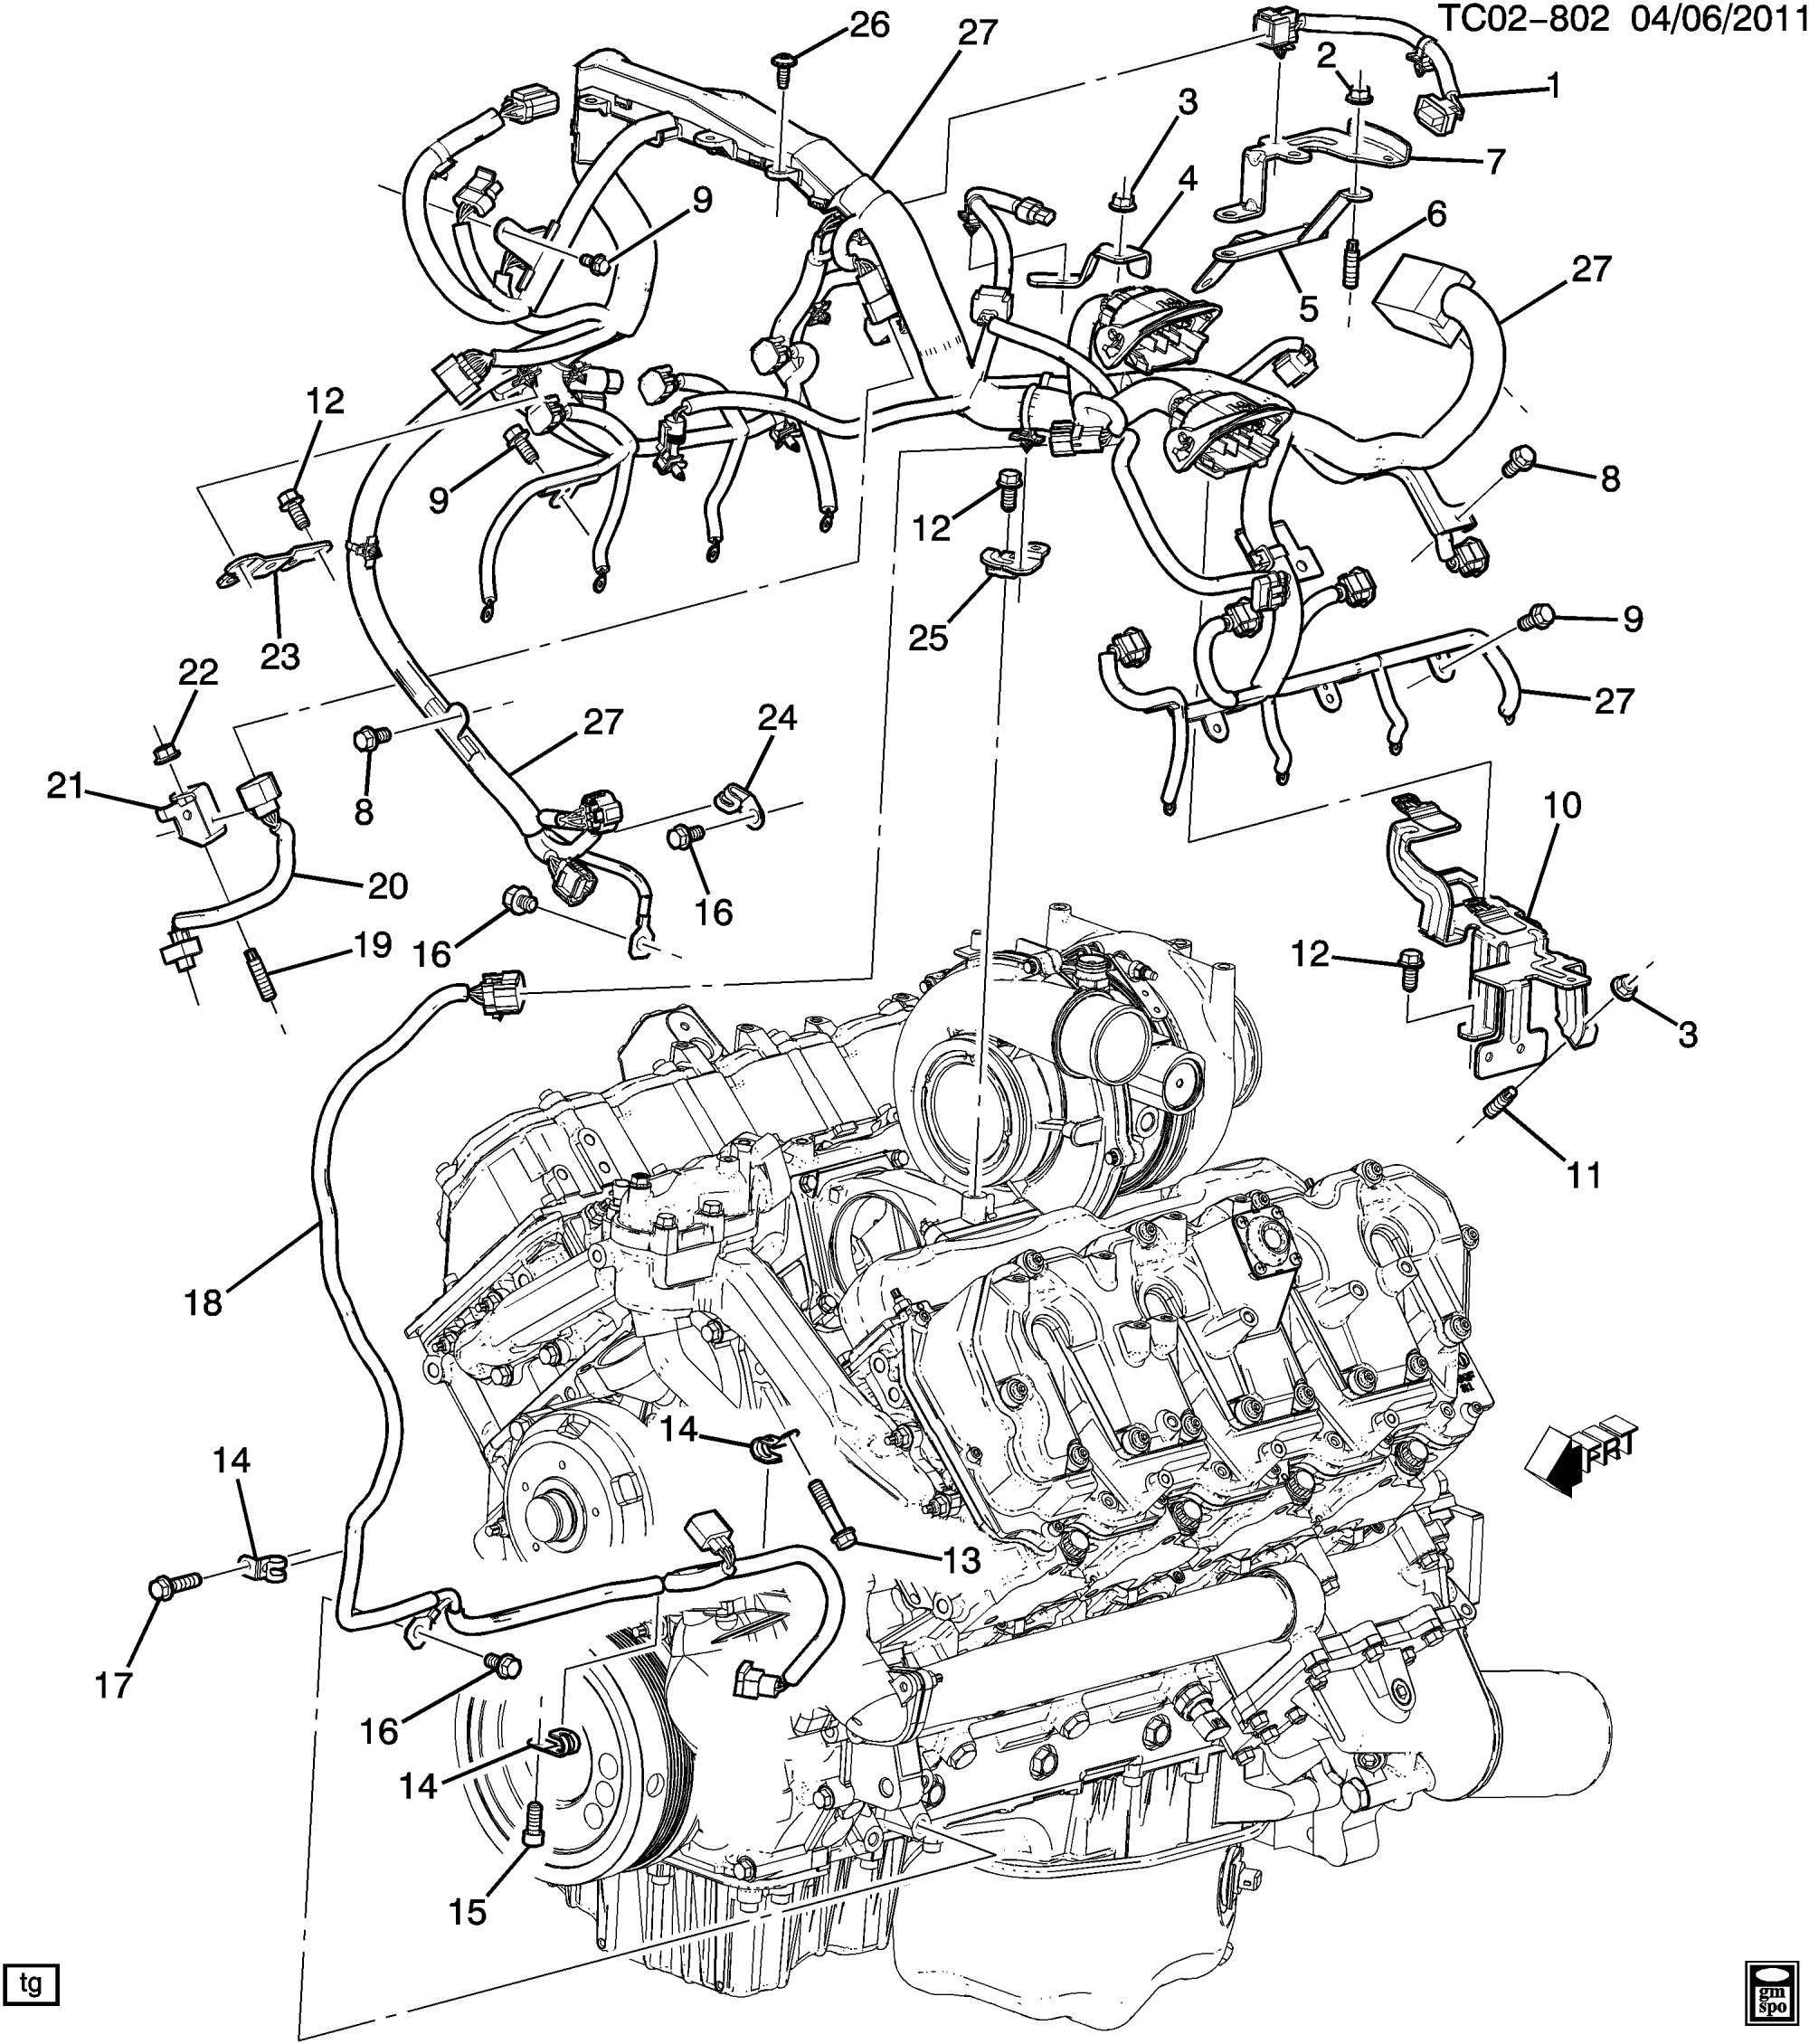 hight resolution of 2005 chevy duramax engine diagram my wiring diagram engine diagram furthermore 2005 chevy silverado duramax engine